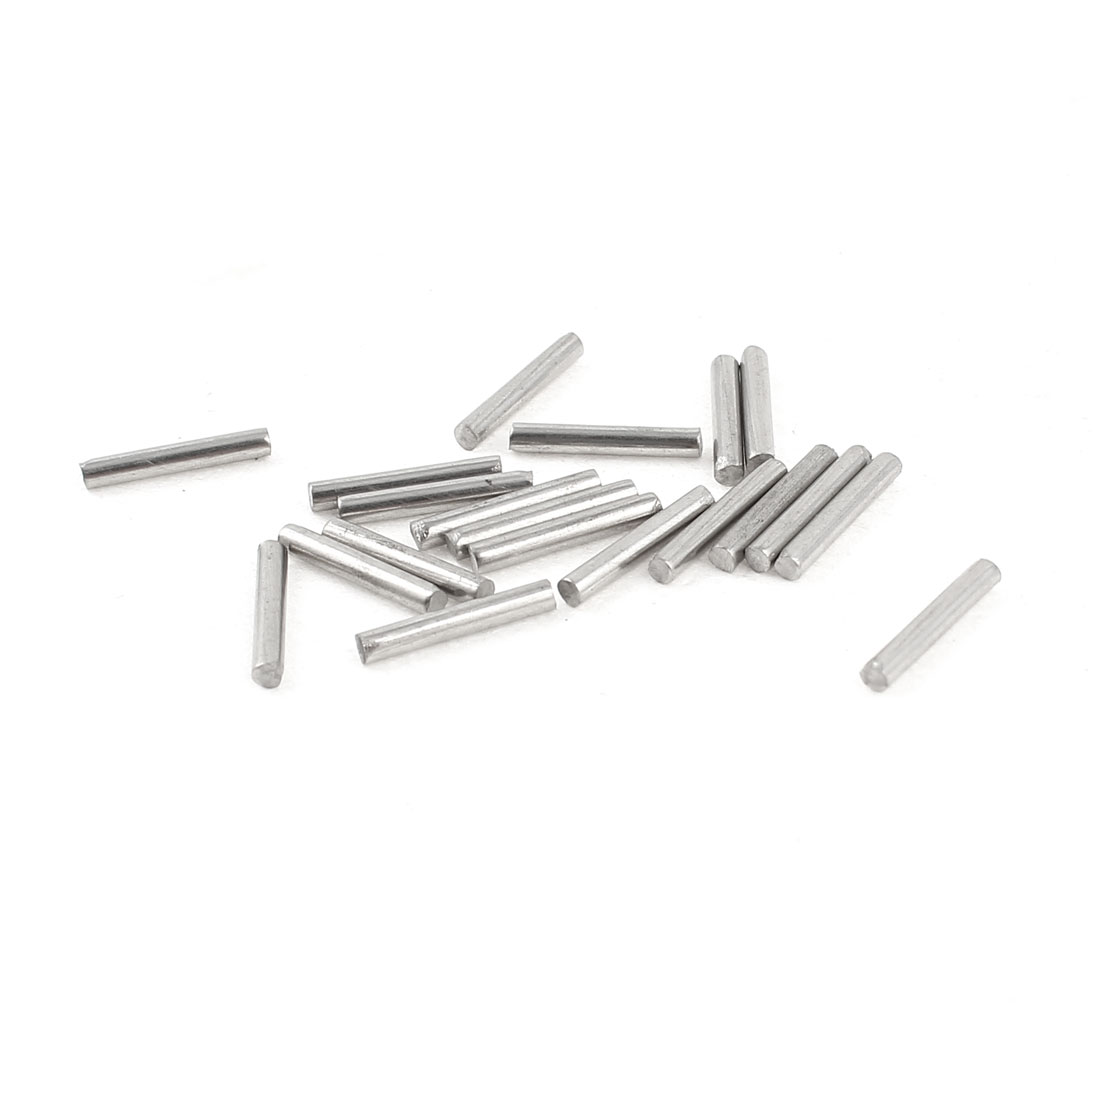 20Pcs 1.6mm Diameter Stainless Steel Motion Axle Circular Round Rod Bar 10mm Long